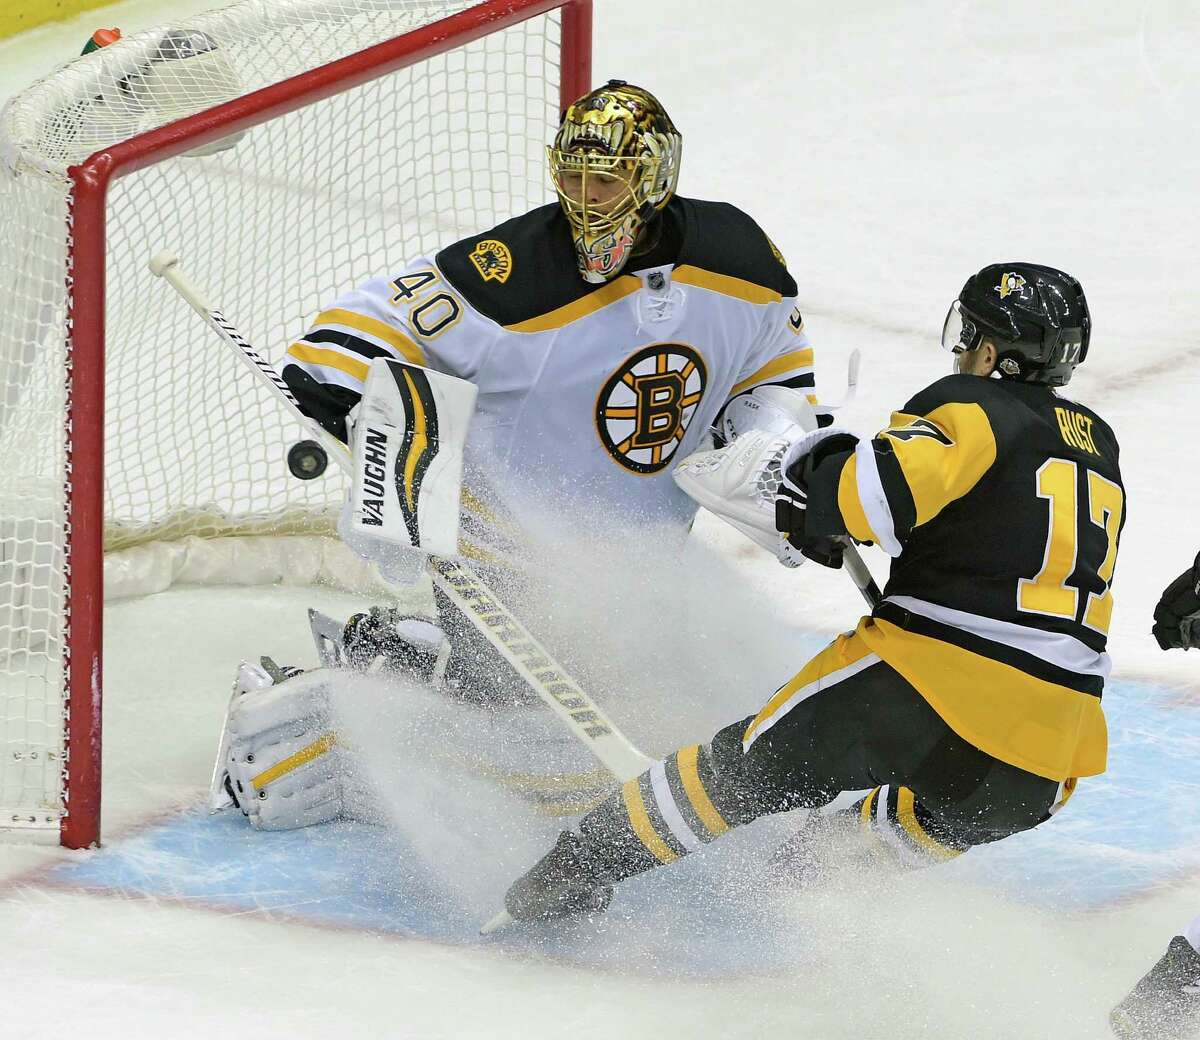 Pittsburgh Penguins right wing Bryan Rust (17) shoots the puck past Boston Bruins goalie Tuukka Rask (40) during the overtime period of an NHL hockey game on Wednesday, Dec. 14, 2016, in Pittsburgh. The Penguins defeated the Bruins 4-3. (AP Photo/Fred Vuich) ORG XMIT: PAFV108